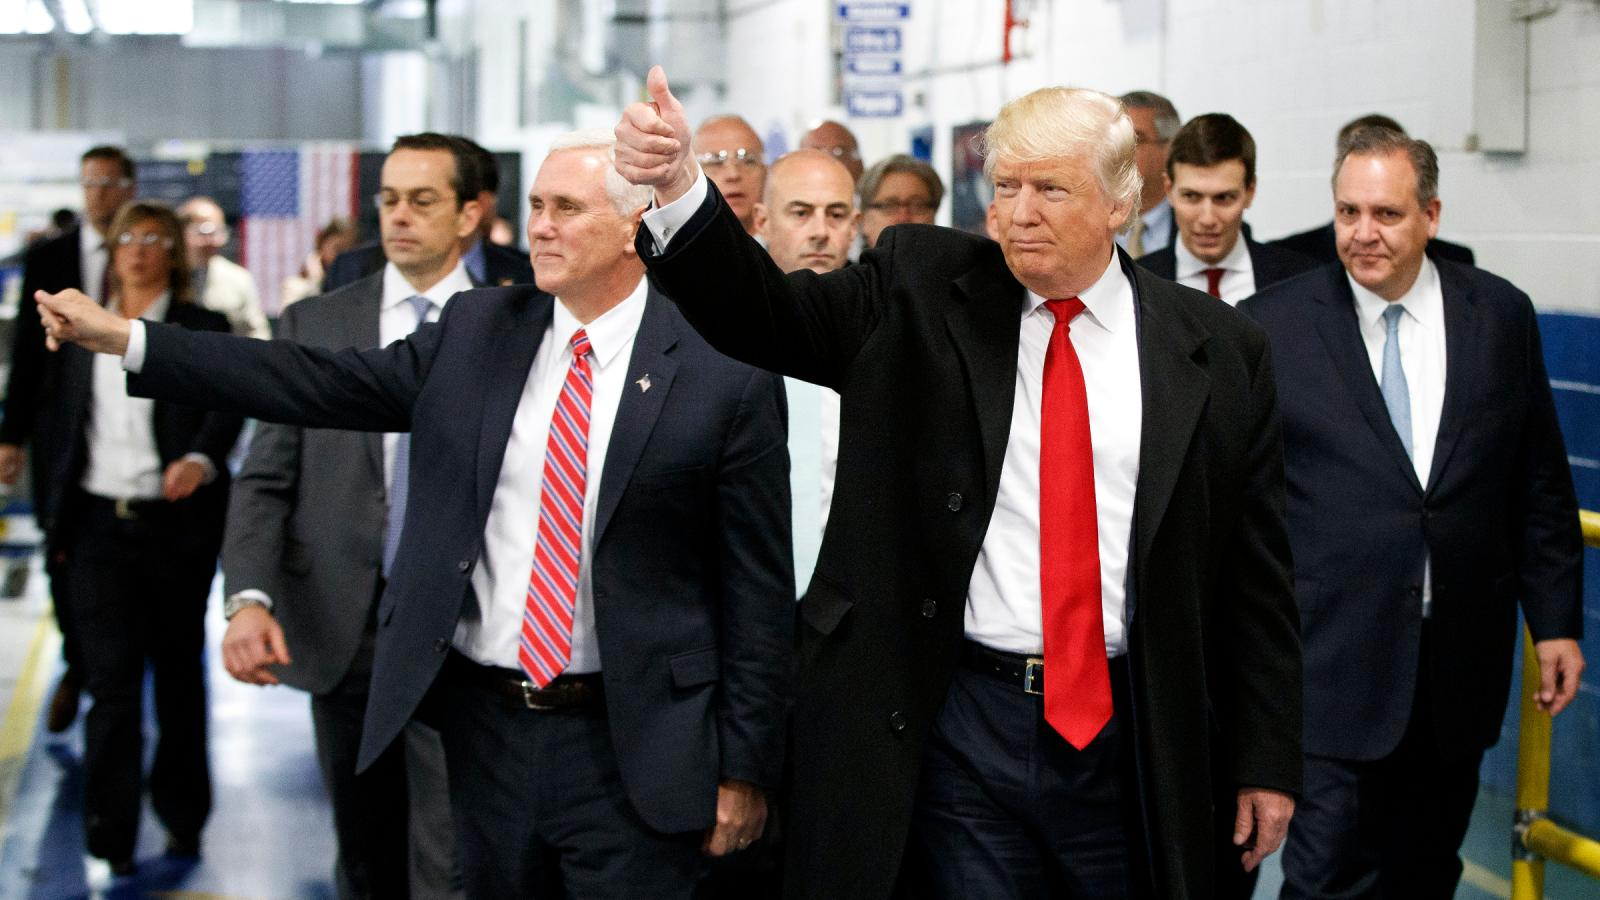 Under Trump, US jobs are moving overseas even faster than